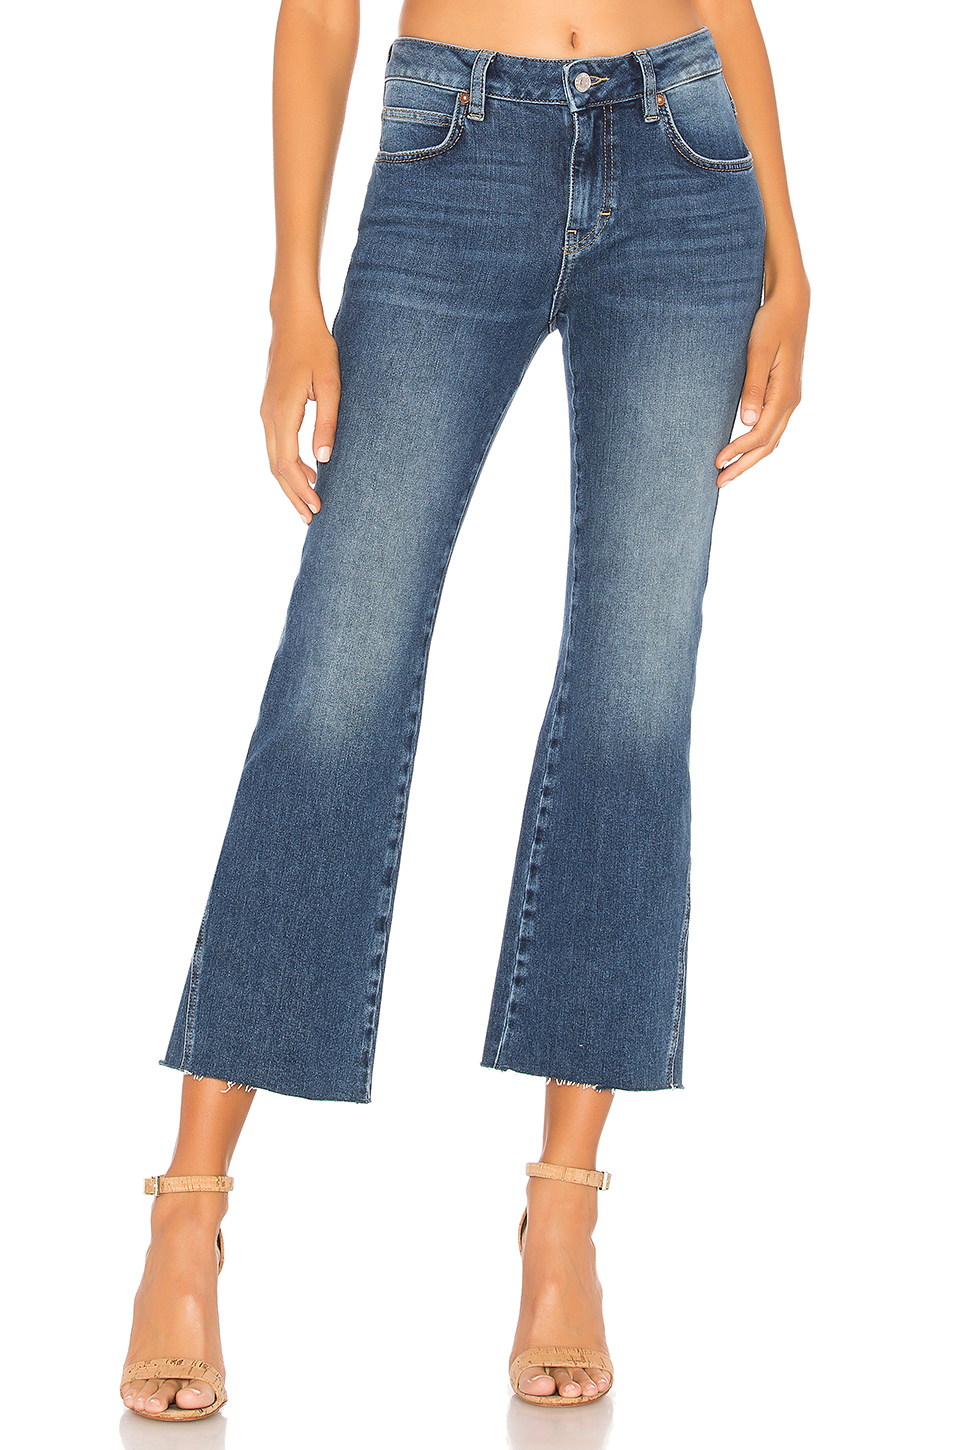 1e13fddff1d Free People. Rita Crop Flare Jean. $98.00. BUY. 9 of 20. Photo Courtesy of  Topshop